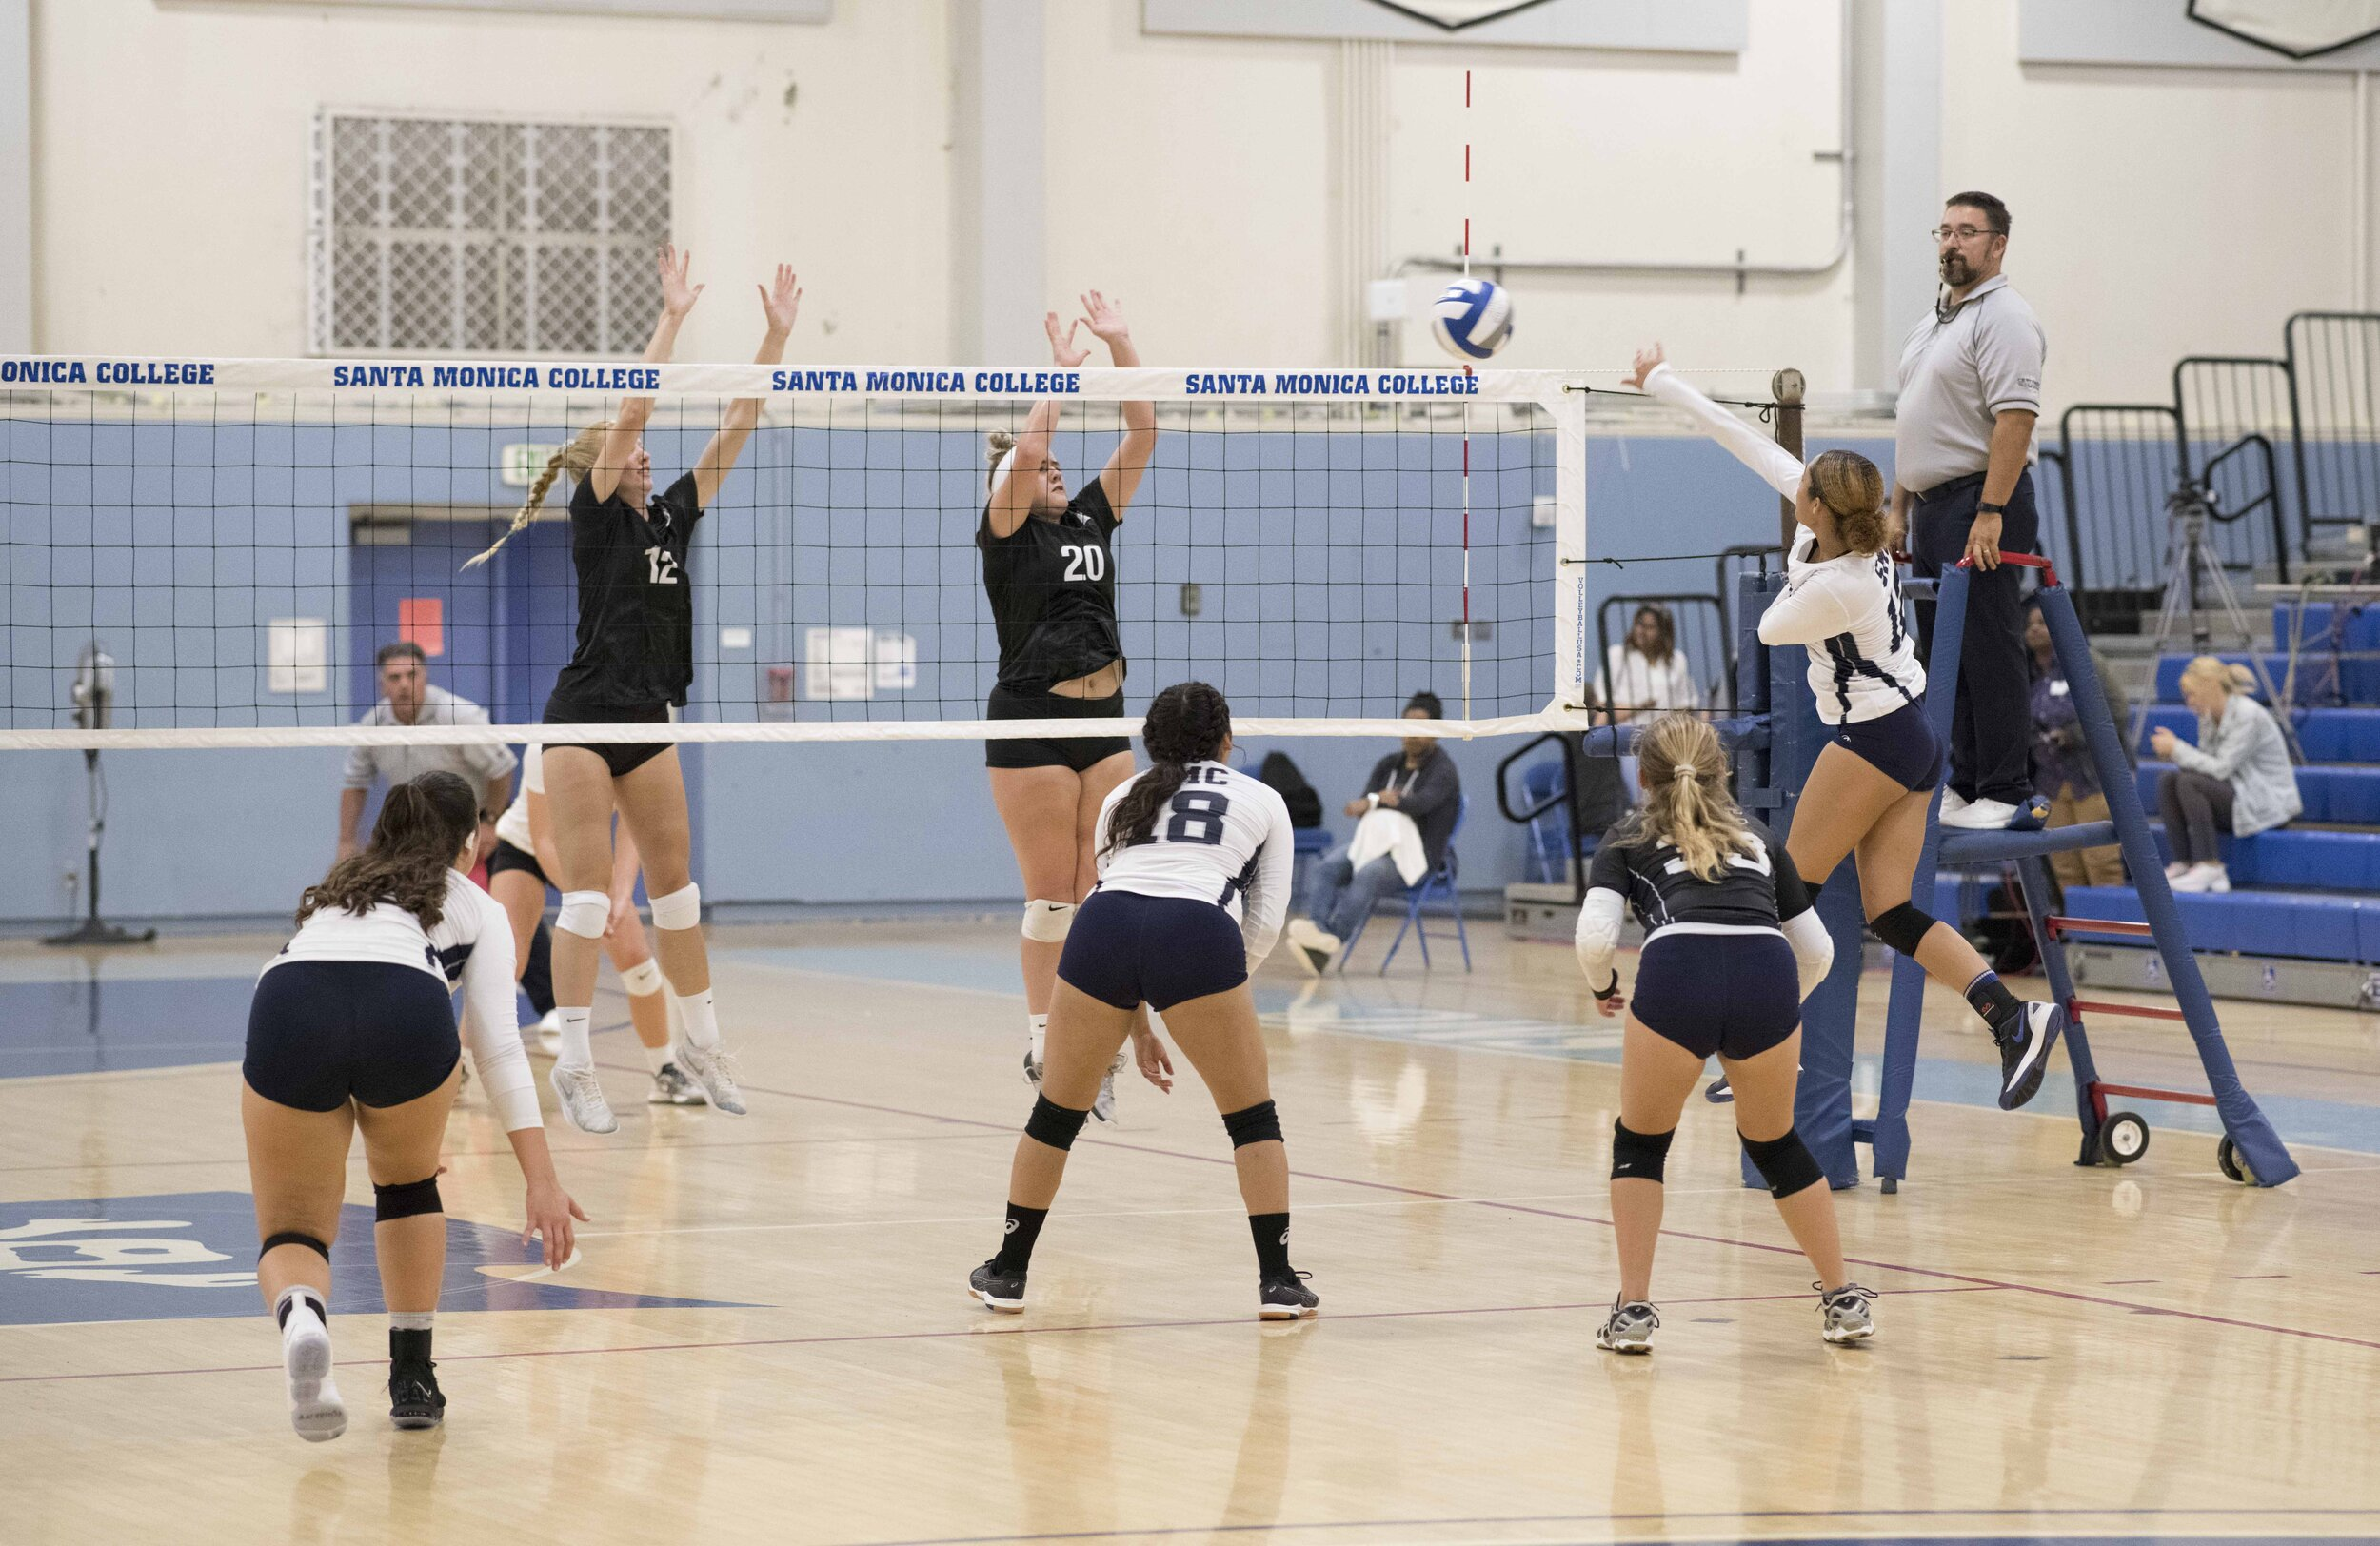 Natalie Crockenberg #12 goes for a kill as two Cuesta players try to block the point. (Kevin Tidmore/The Corsair)